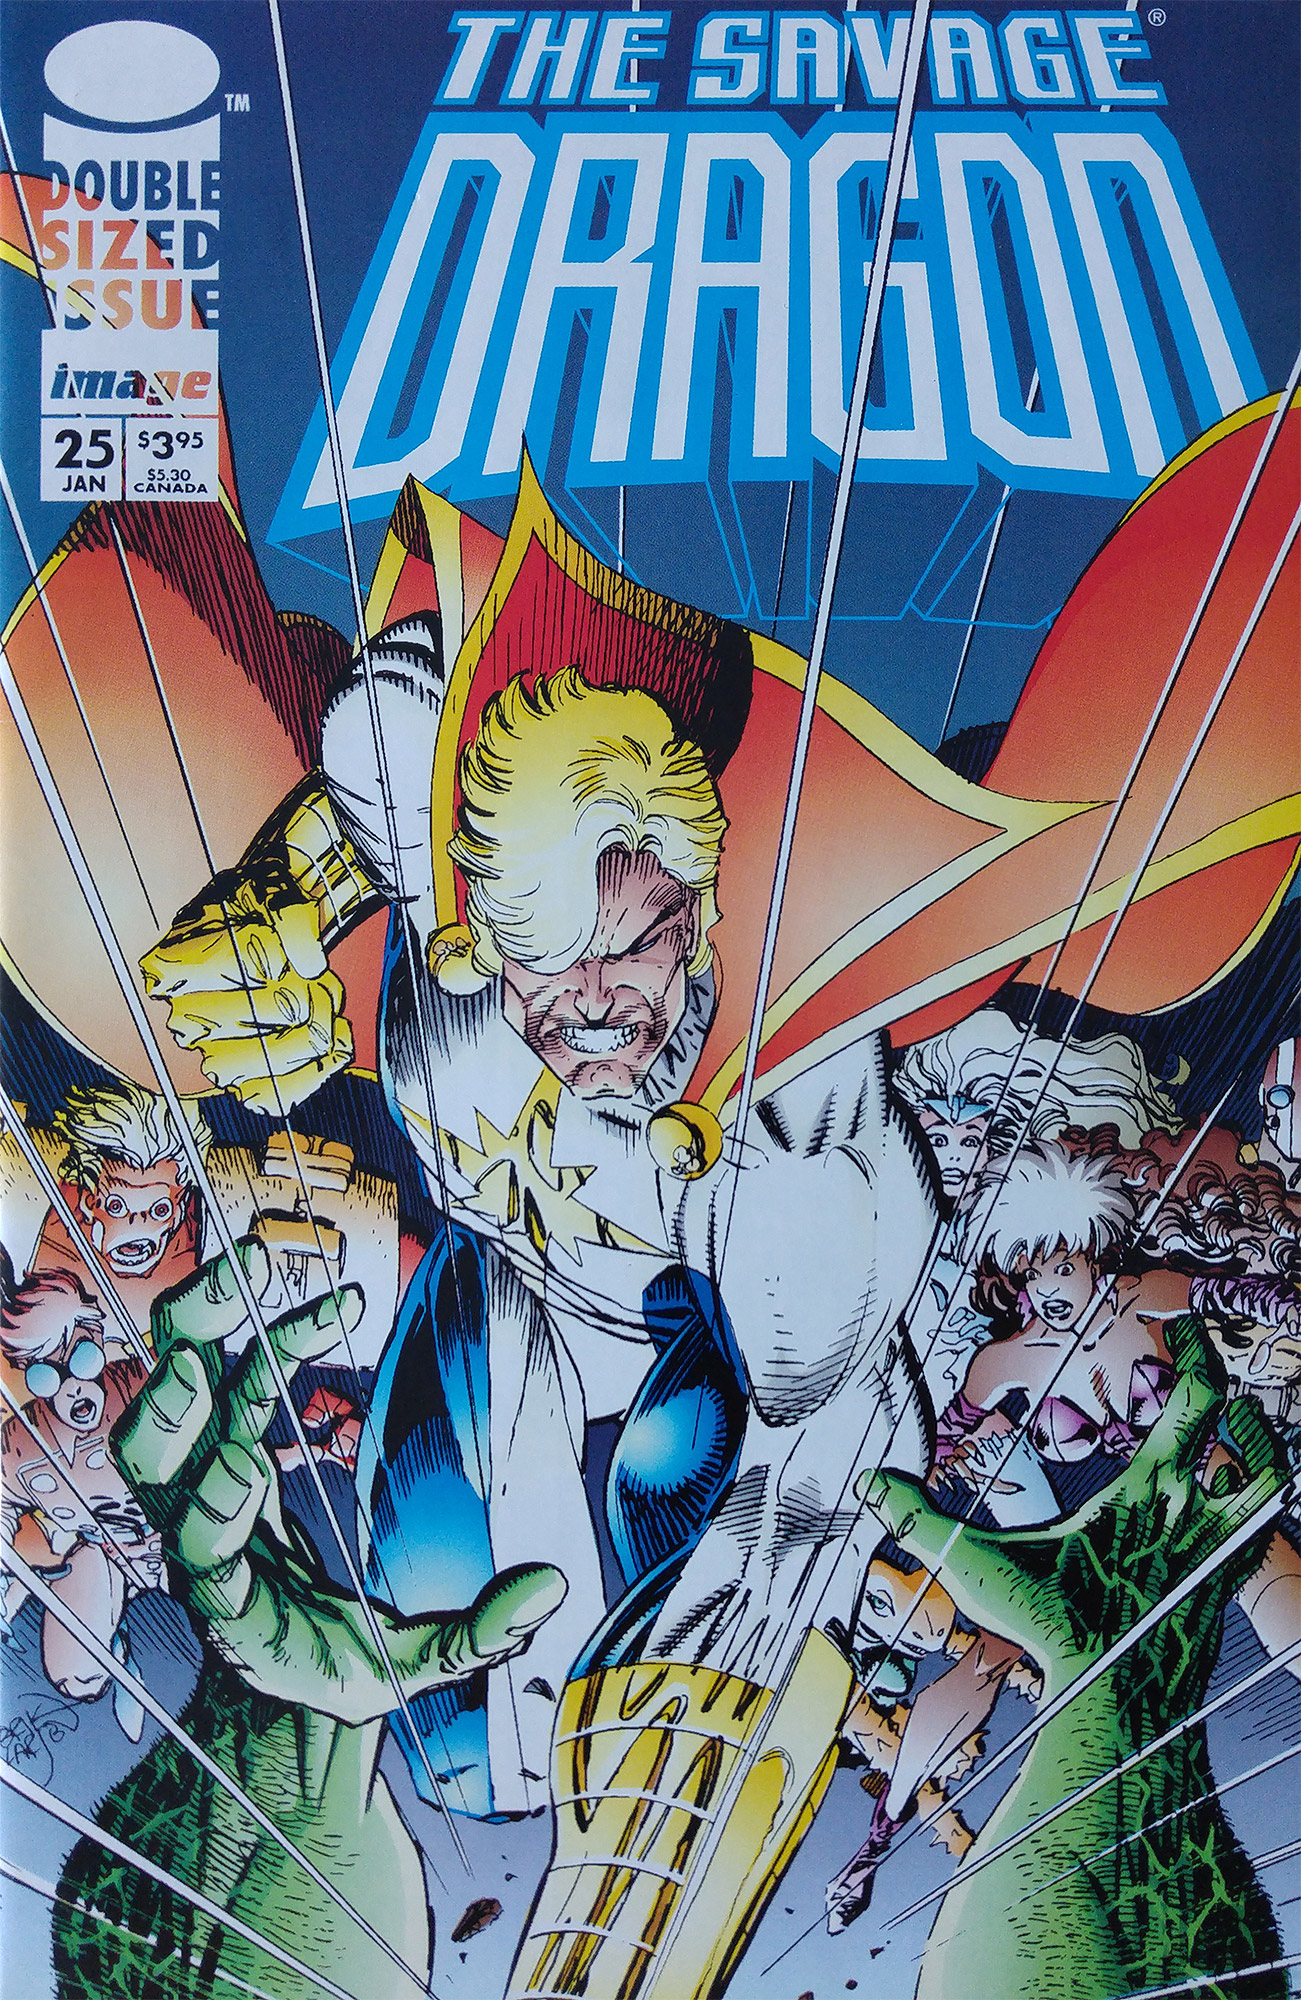 Cover Savage Dragon Vol.2 #25